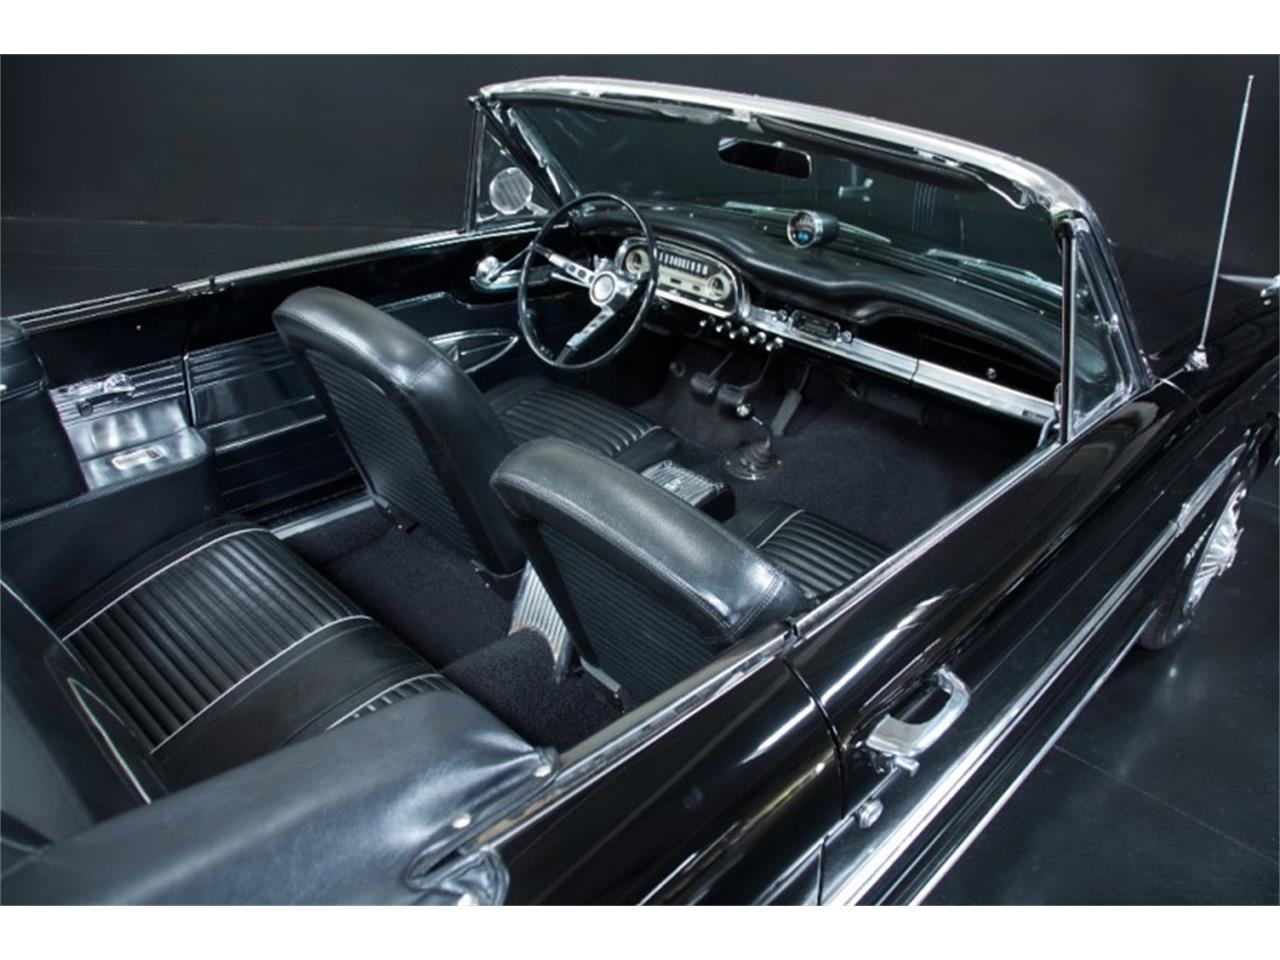 1963 Ford Falcon for sale in Milpitas, CA – photo 55